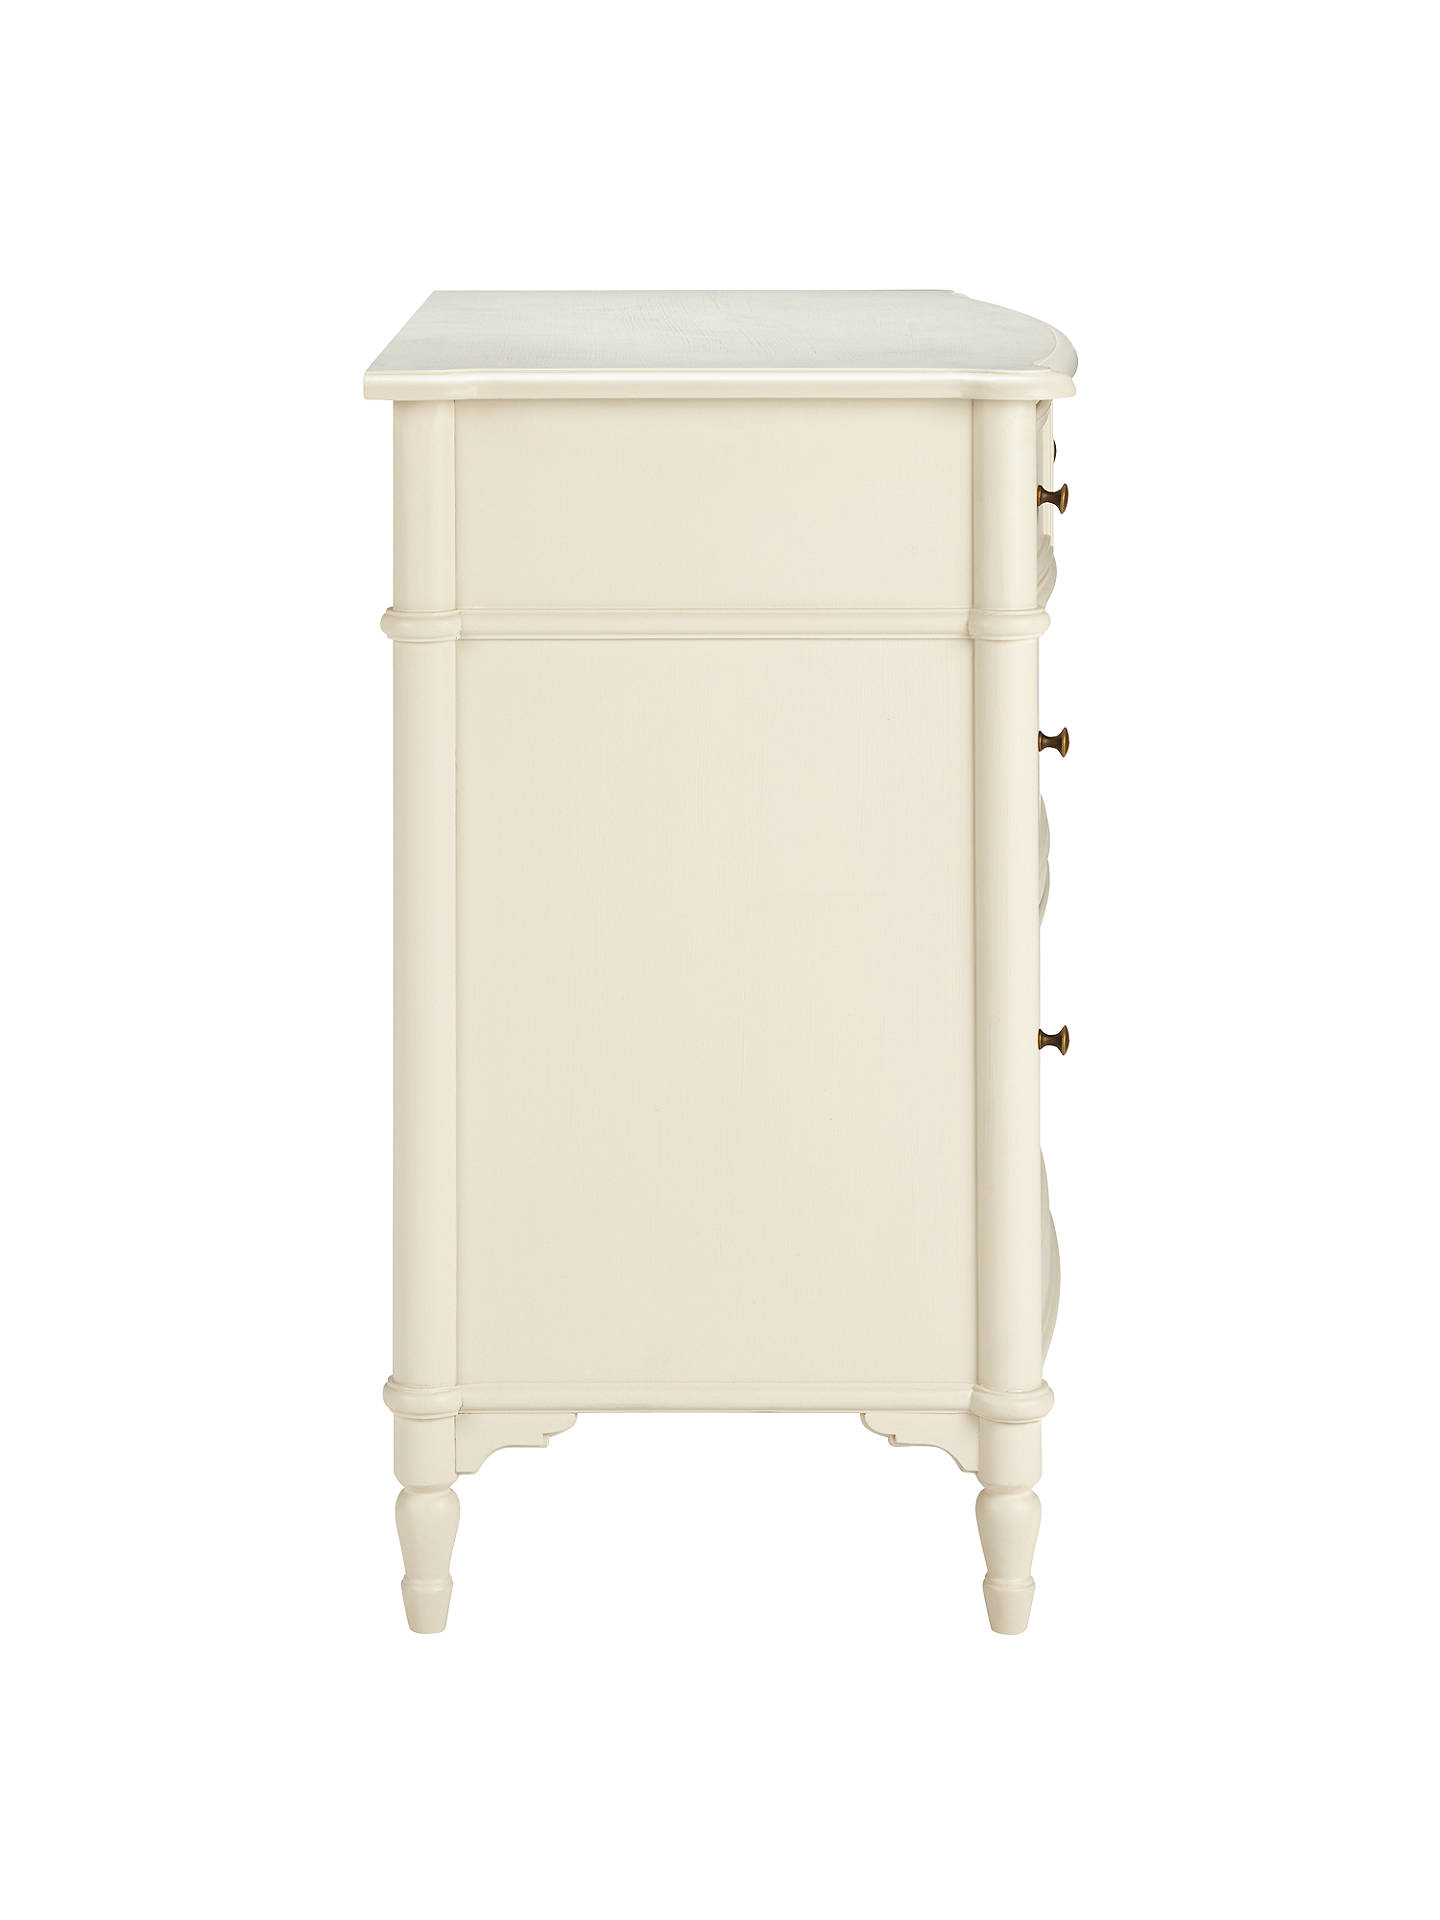 Buy John Lewis & Partners Ivybridge 5 Drawer Chest Online at johnlewis.com